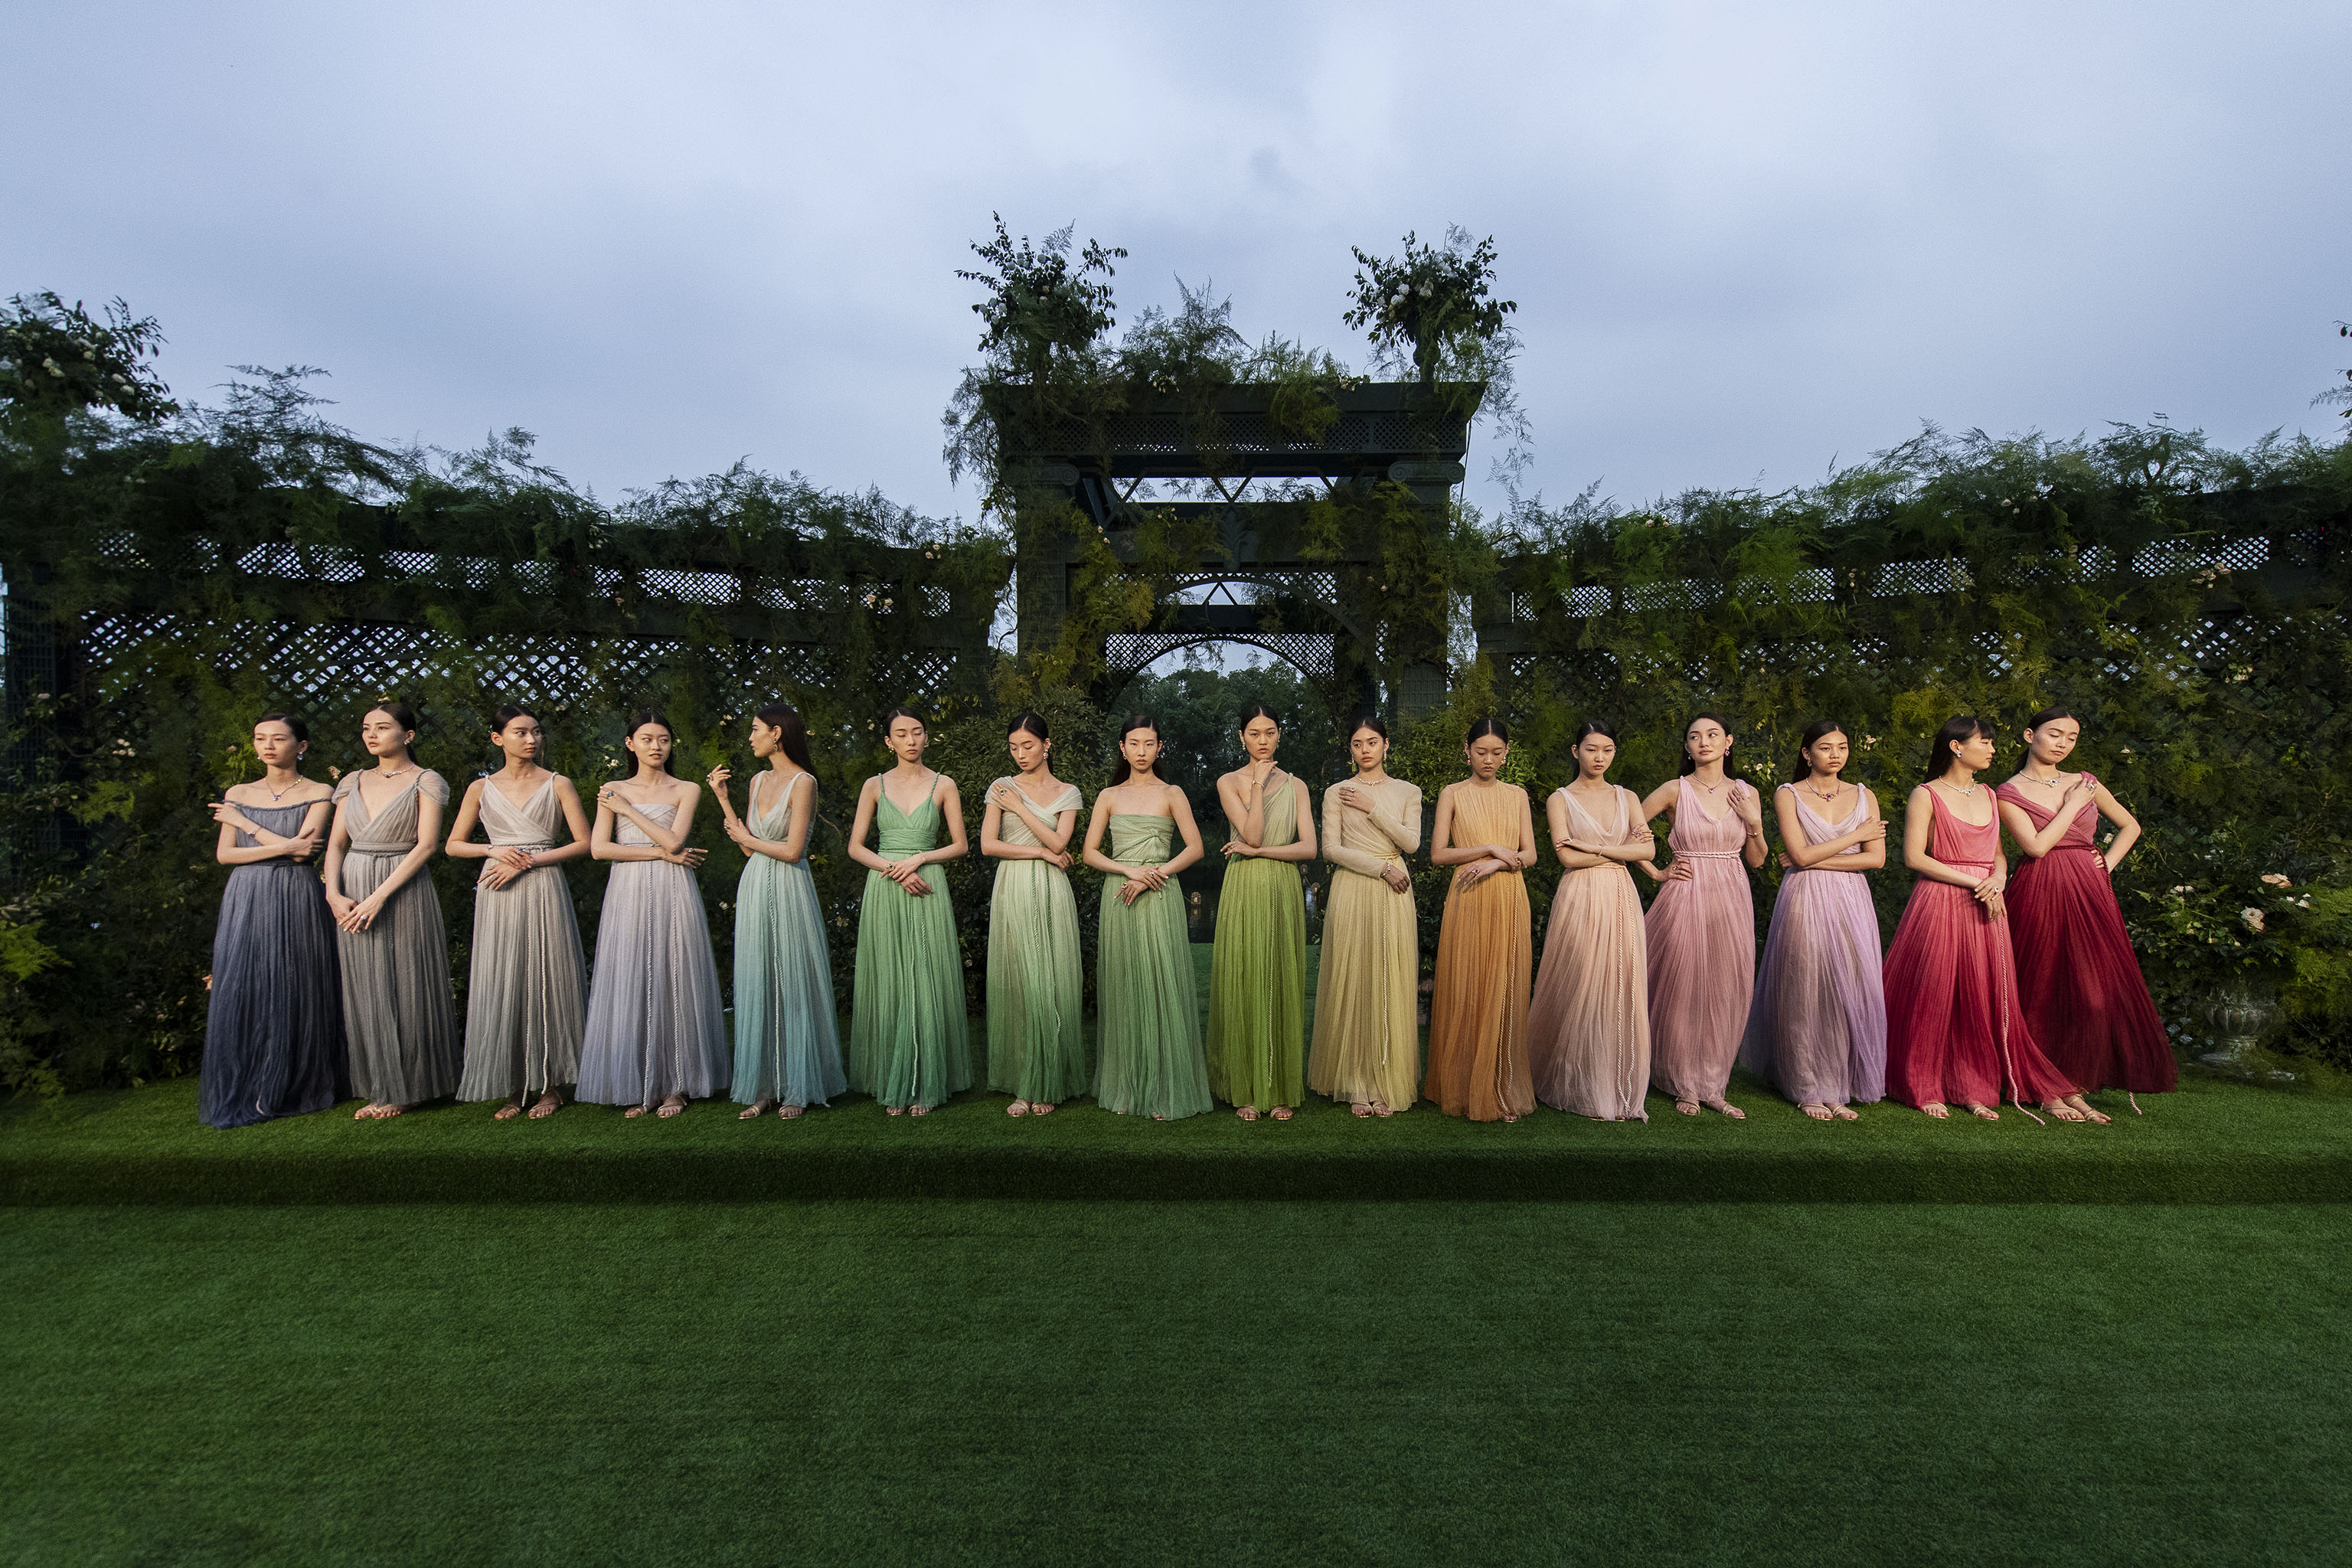 Dior presented 16 new Couture looks at the presentation.